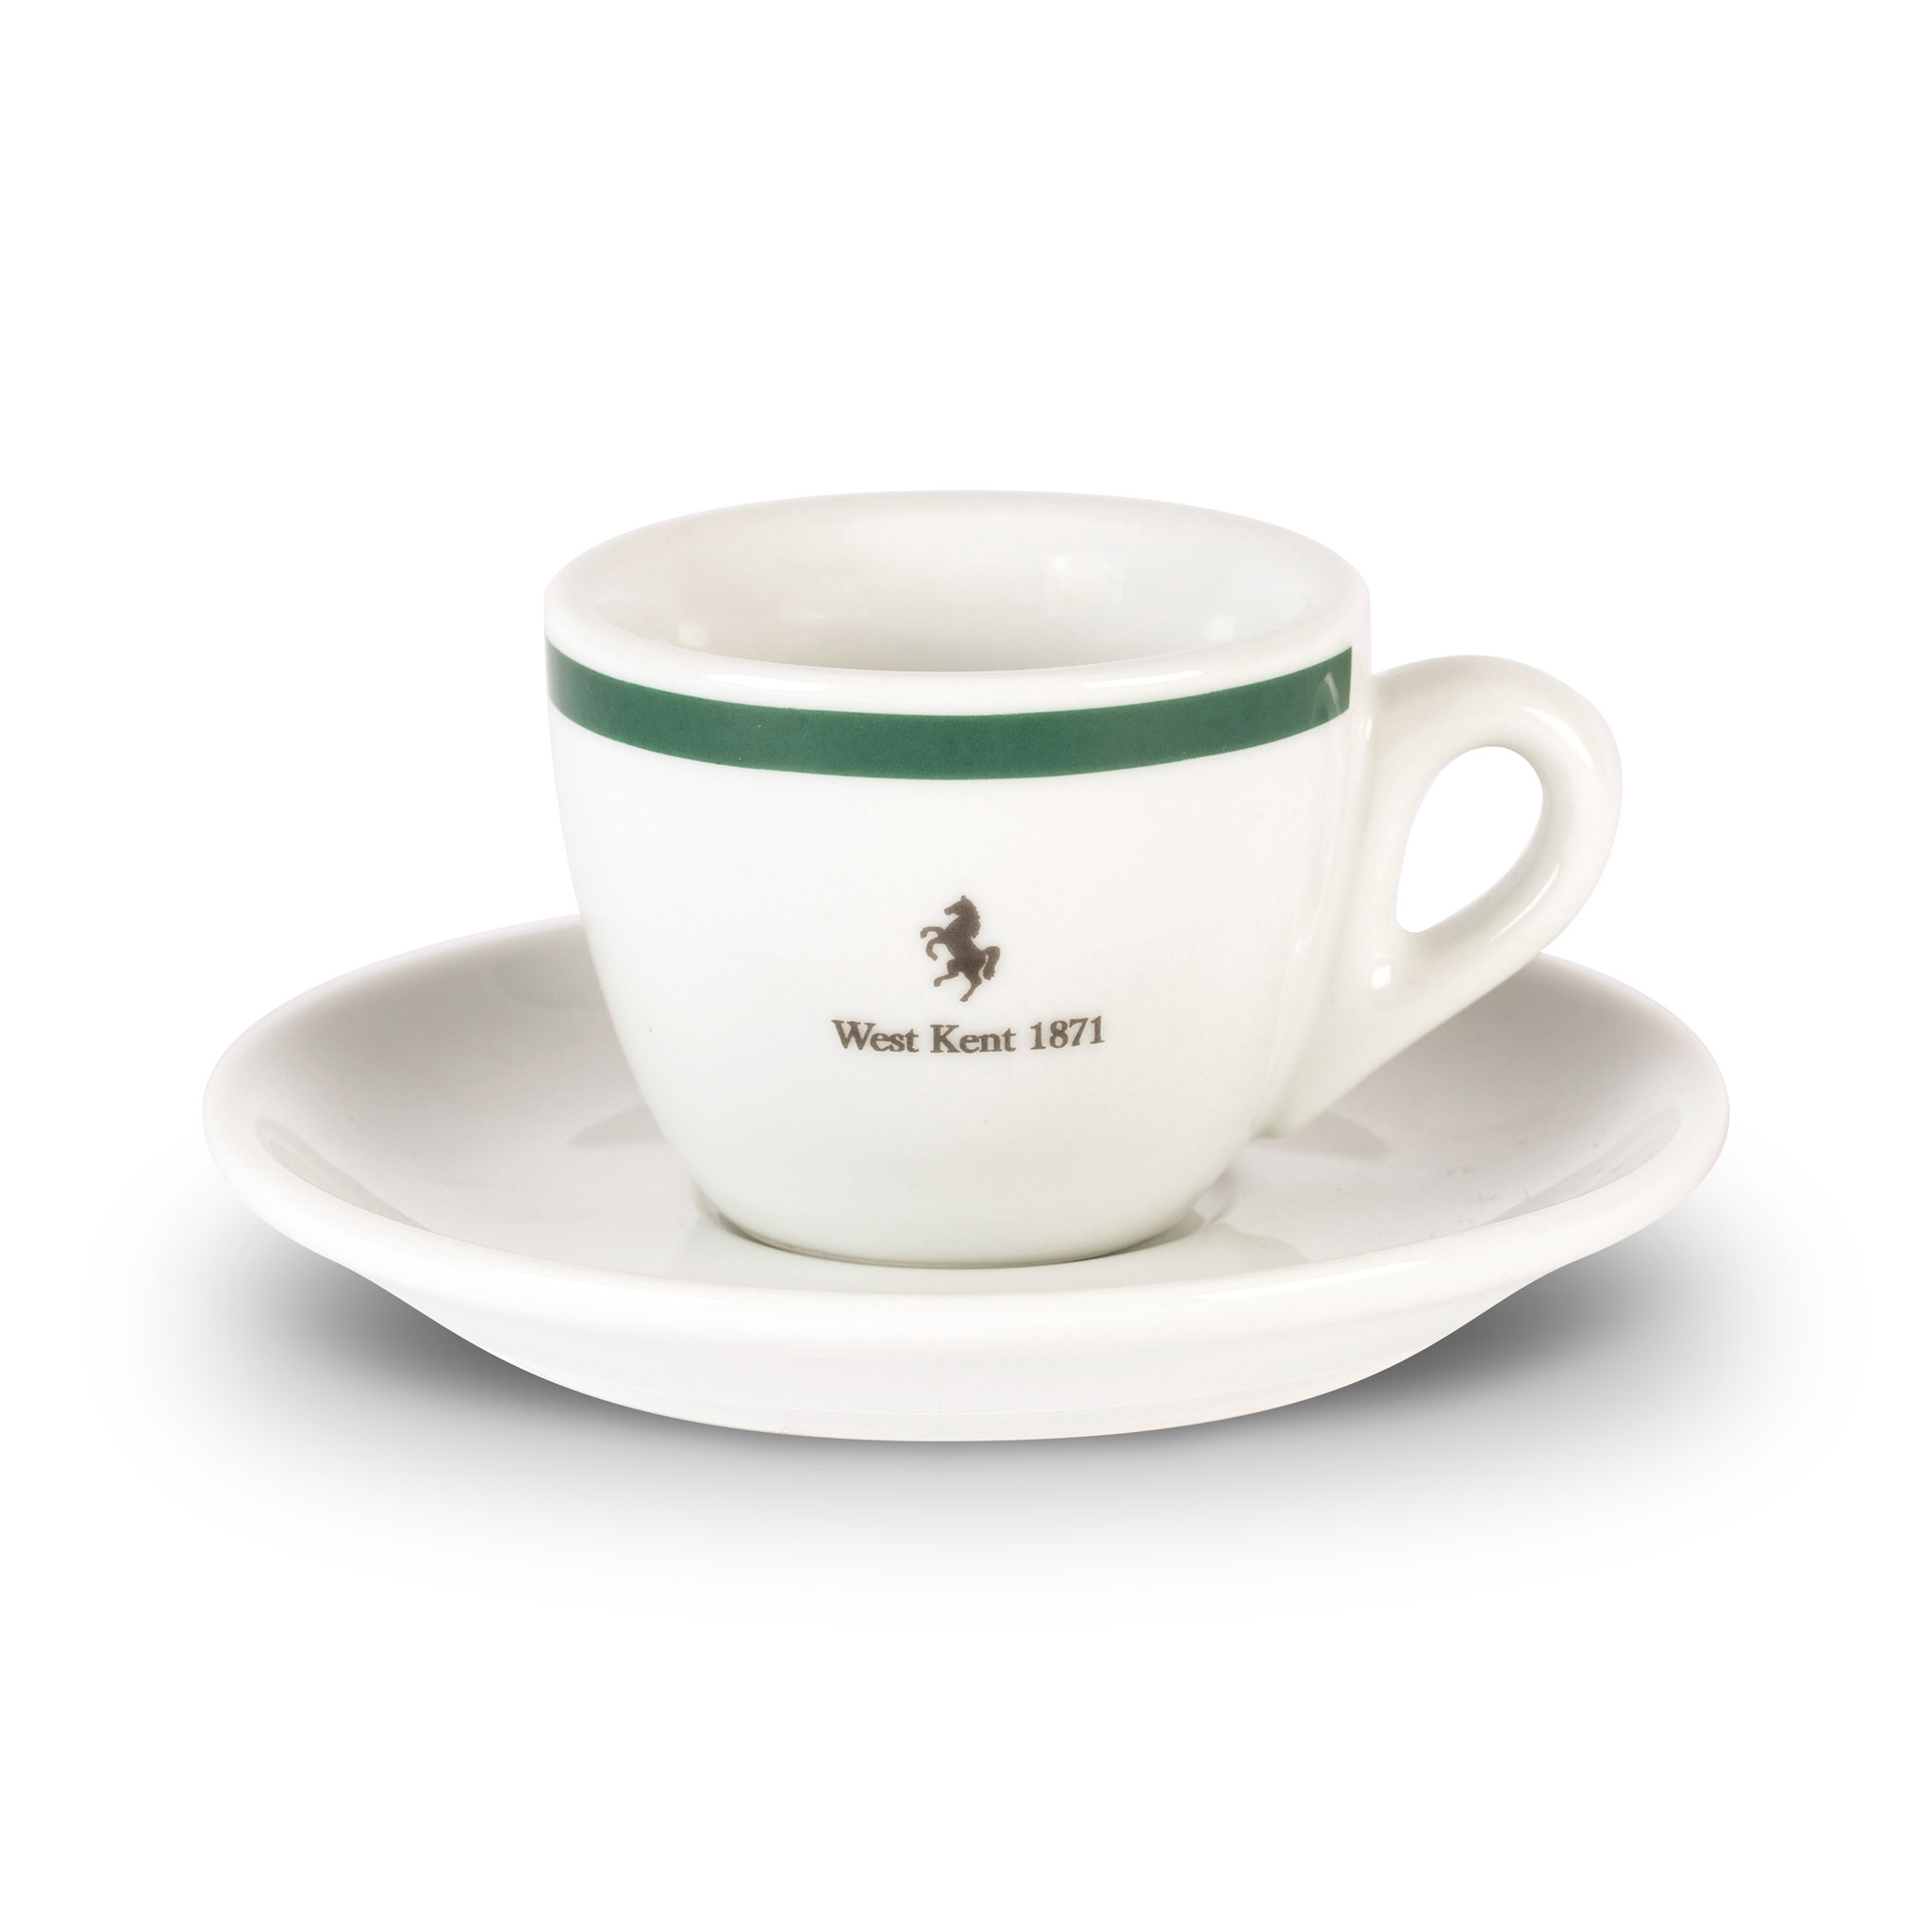 West Kent espresso cup and saucer